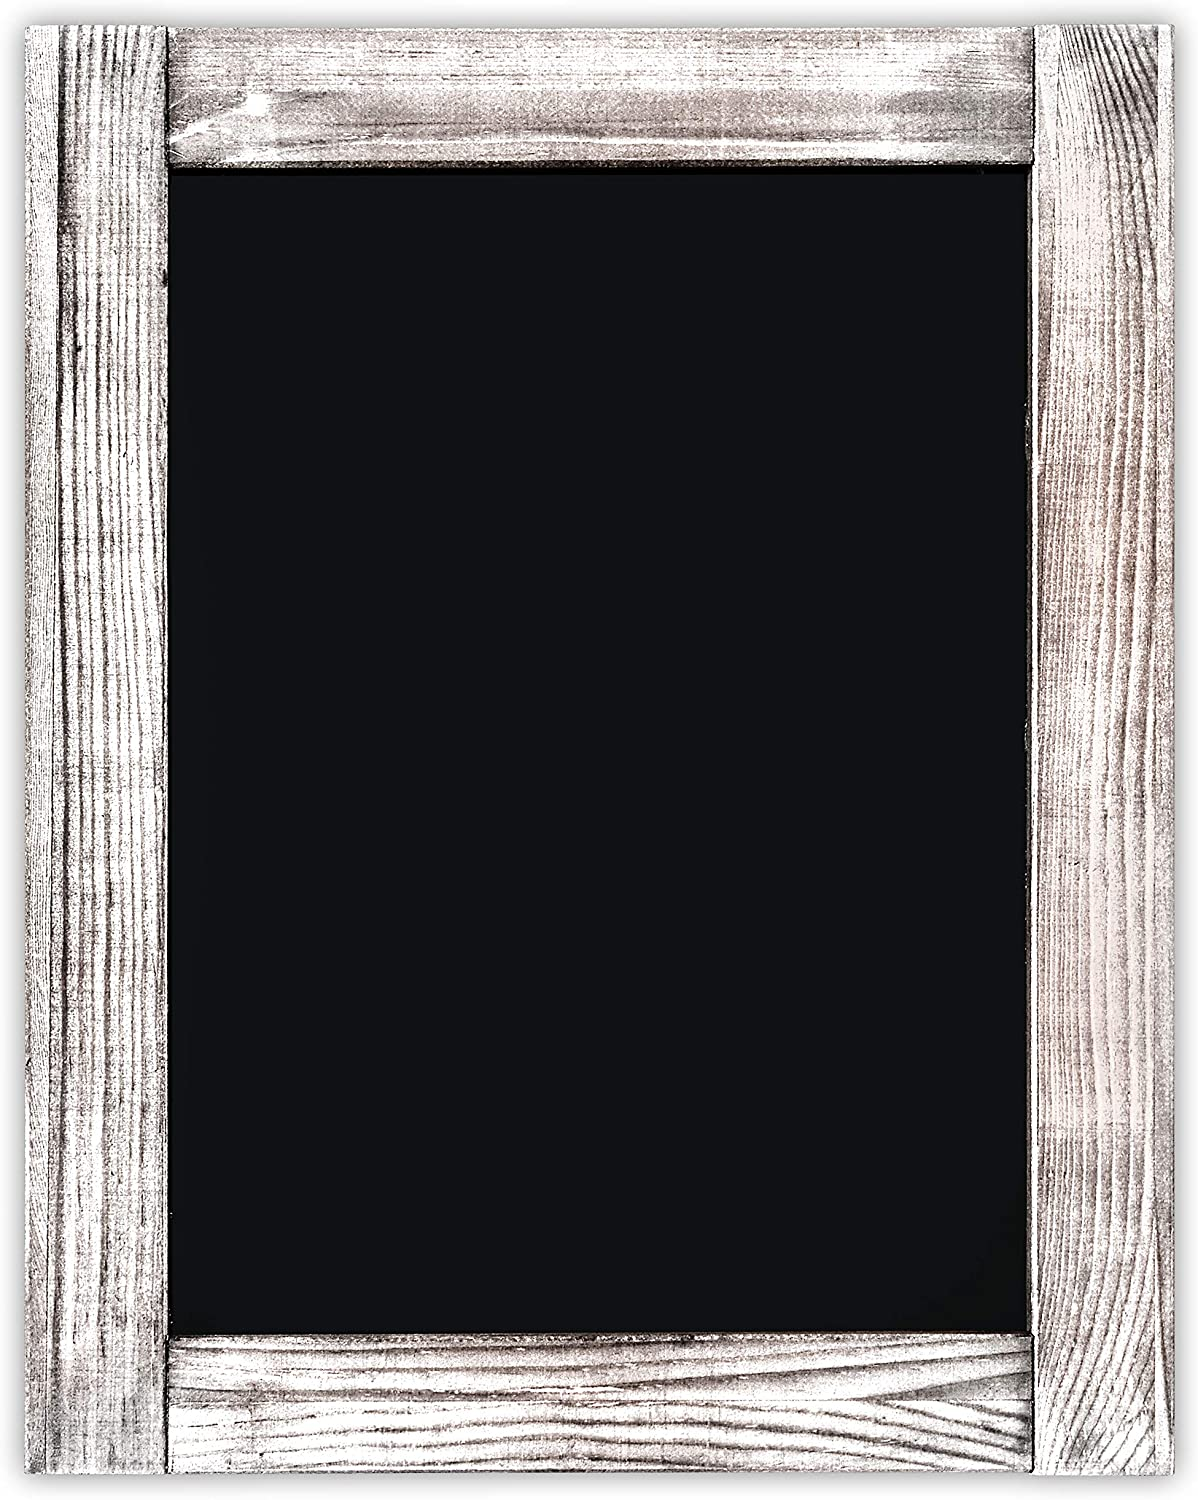 Chalkboard | Magnetic, Non-Porous | Vintage Decor | Whitewash Finish | Chalk Board for Wedding, Kitchen, Bar, Restaurant, Menu & Home | Chalkboard Sign | 11 x 14 inches | Wall Mounted Chalkboard